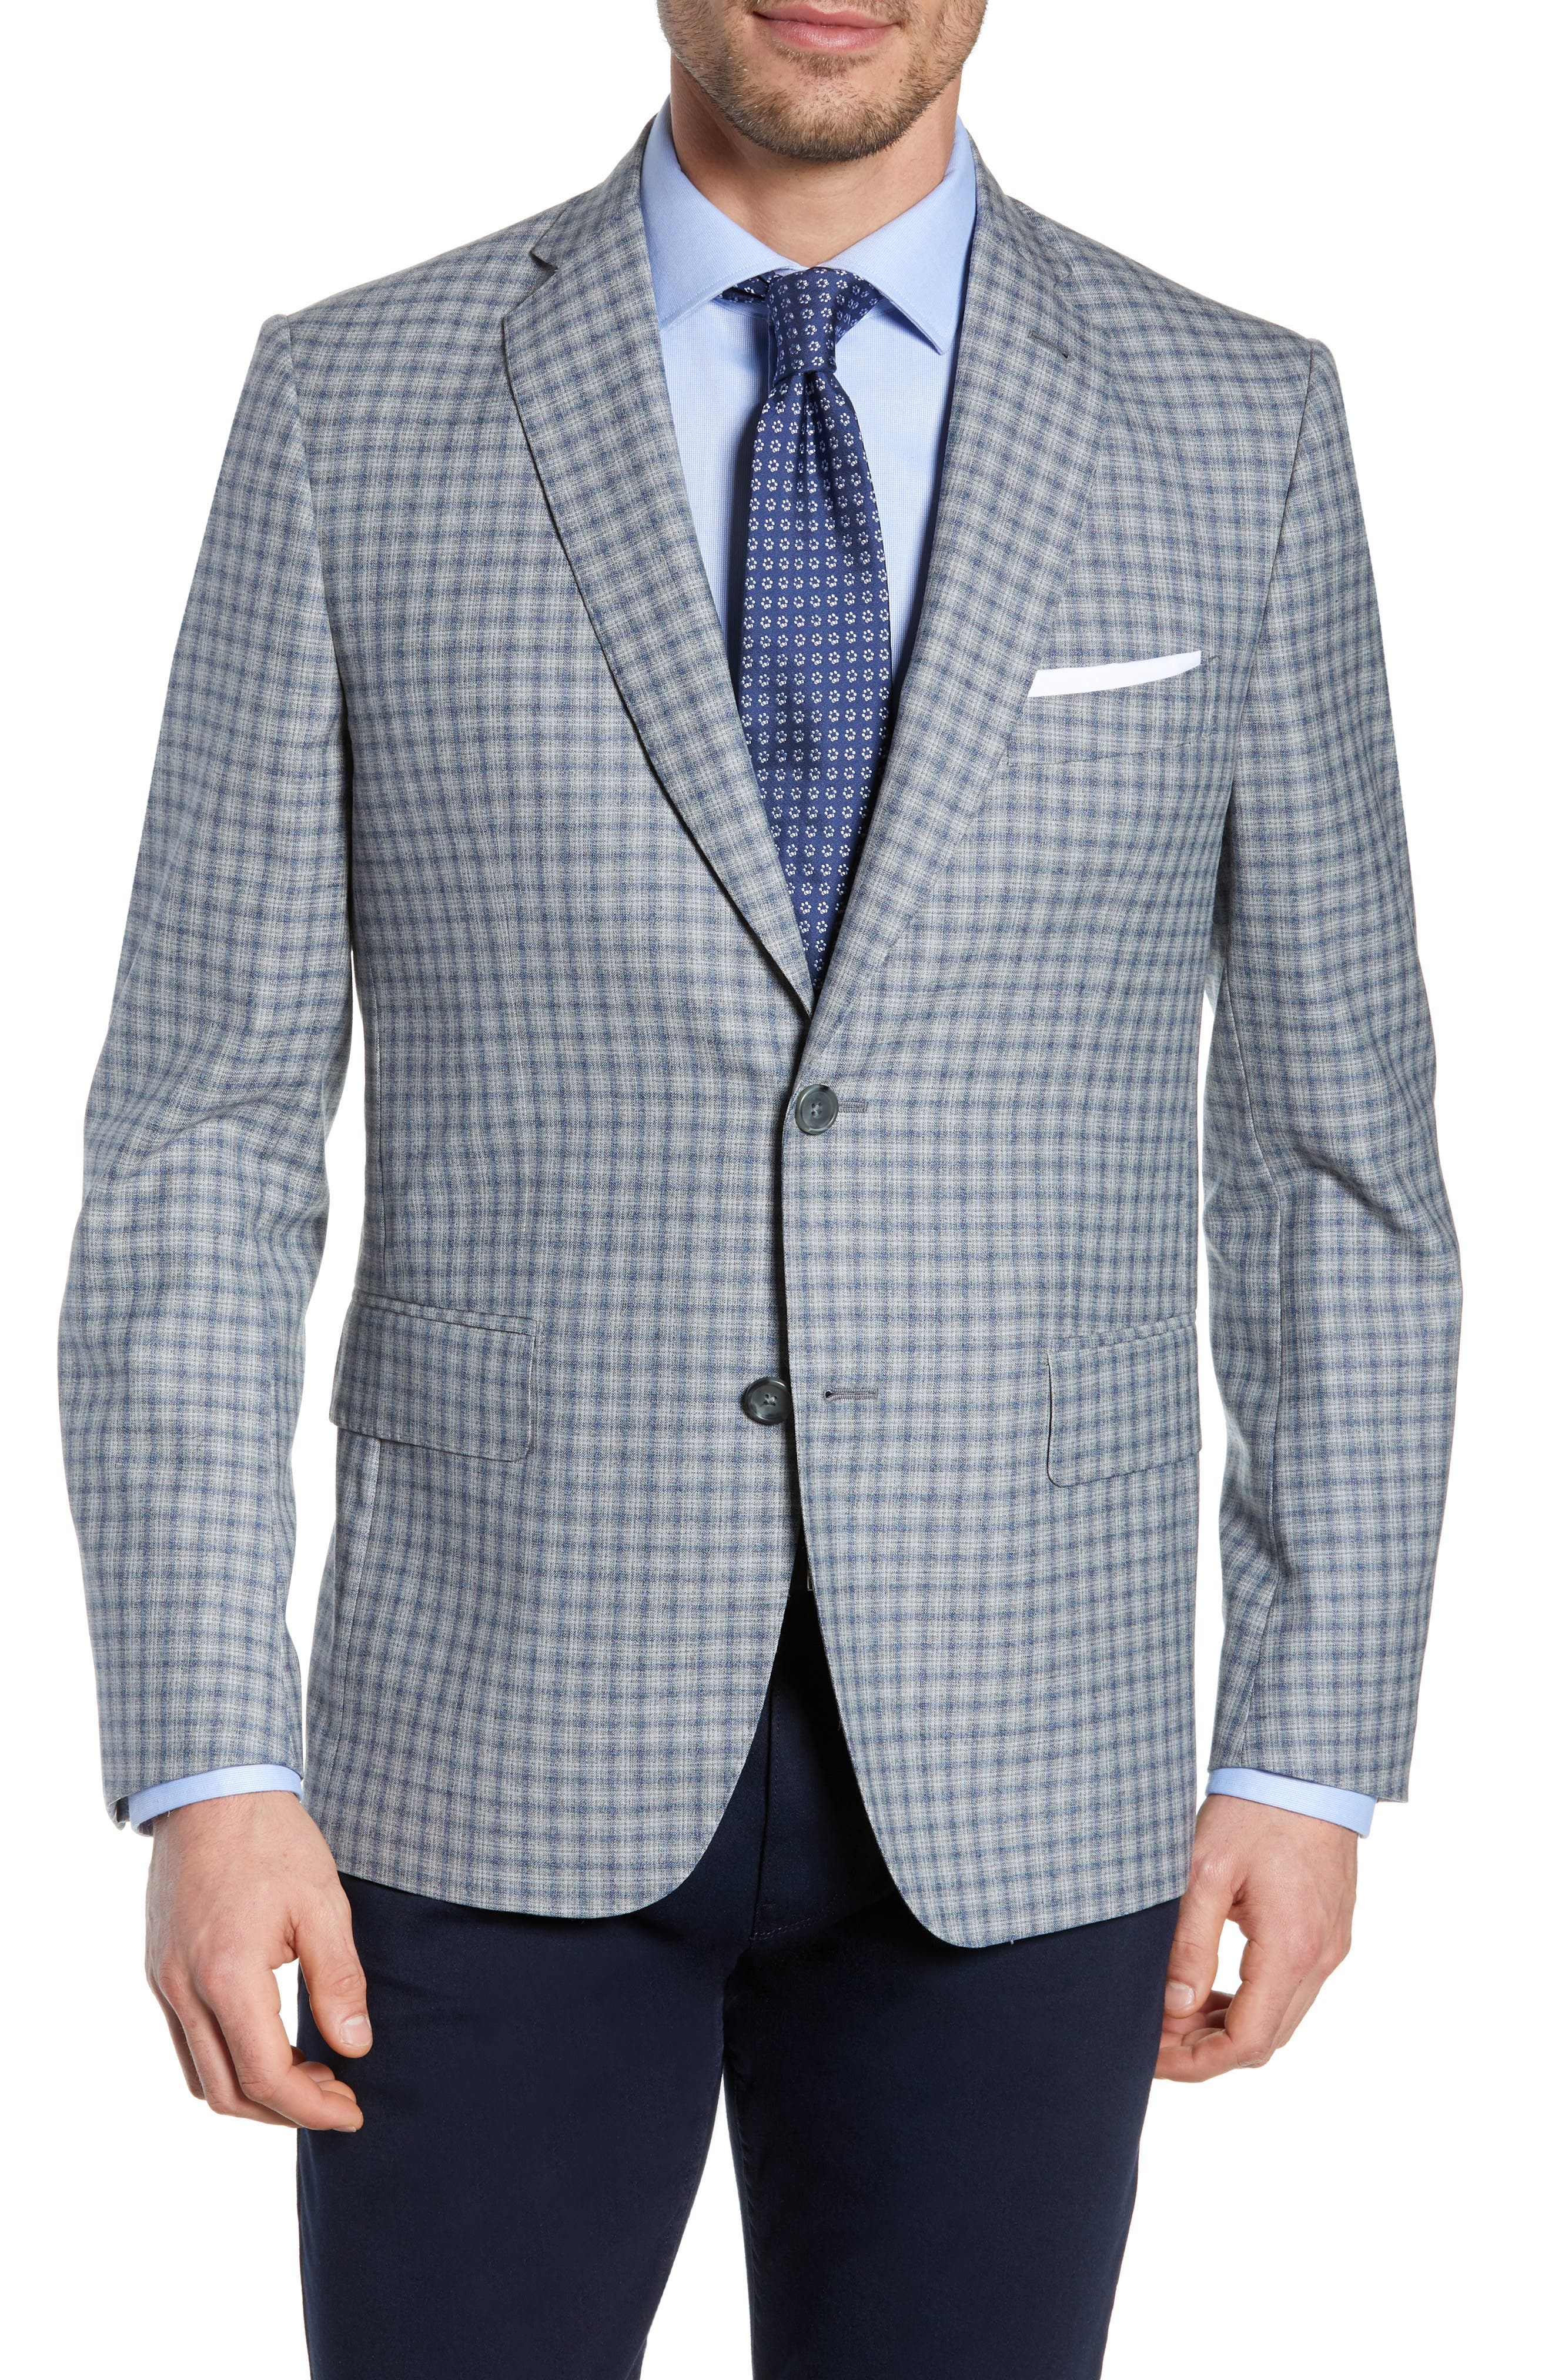 JOHN W. NORDSTROM<SUP>®</SUP>, Traditional Fit Plaid Wool Sport Coat, Main thumbnail 1, color, GREY FILIGREE BLUE CHECK